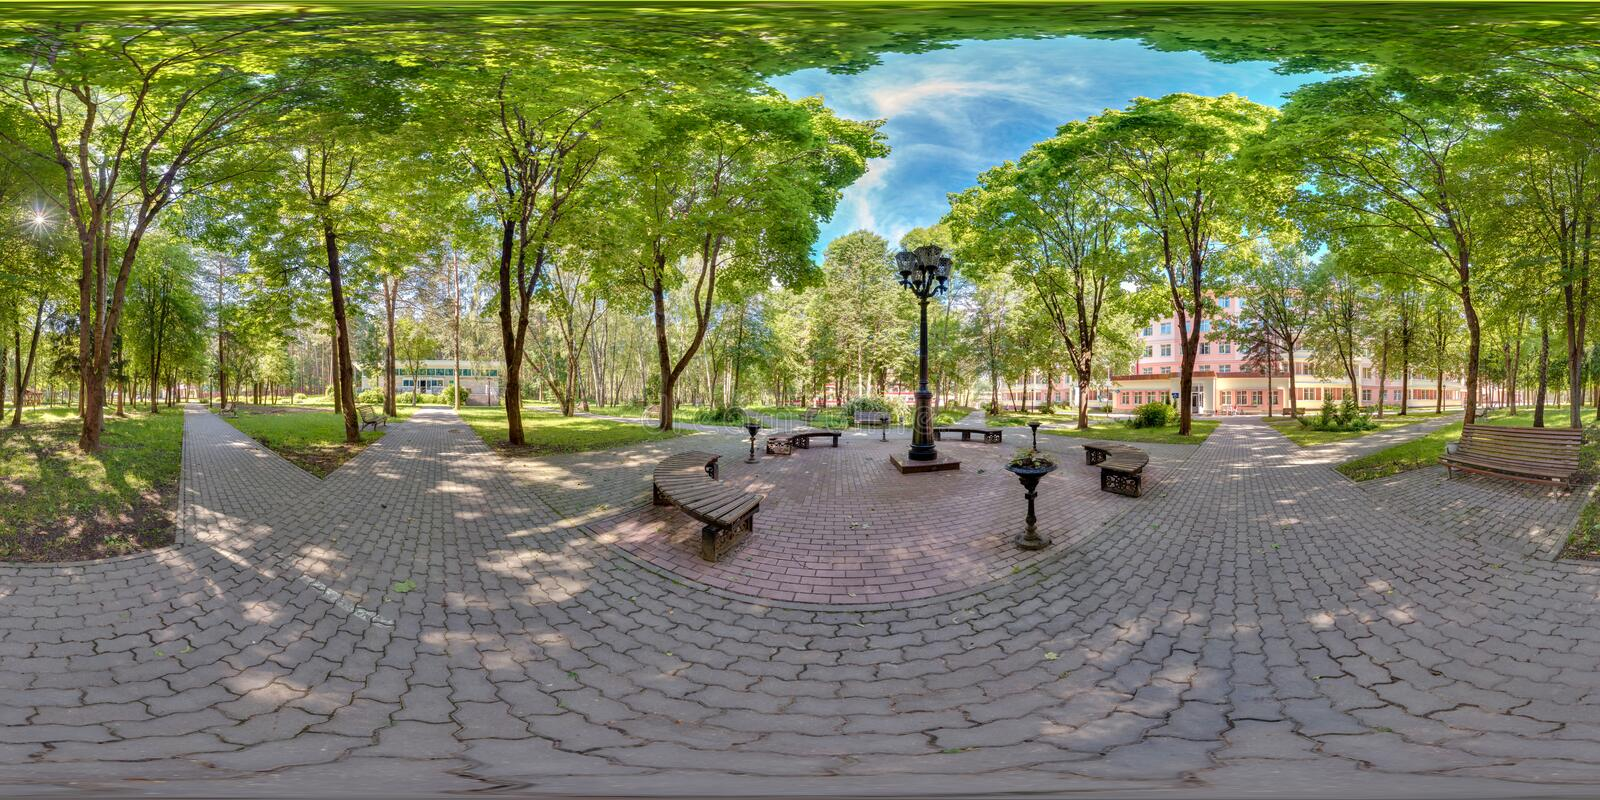 Full spherical 360 degrees seamless panorama in equirectangular equidistant projection, panorama in park green zone, VR content.  stock photo